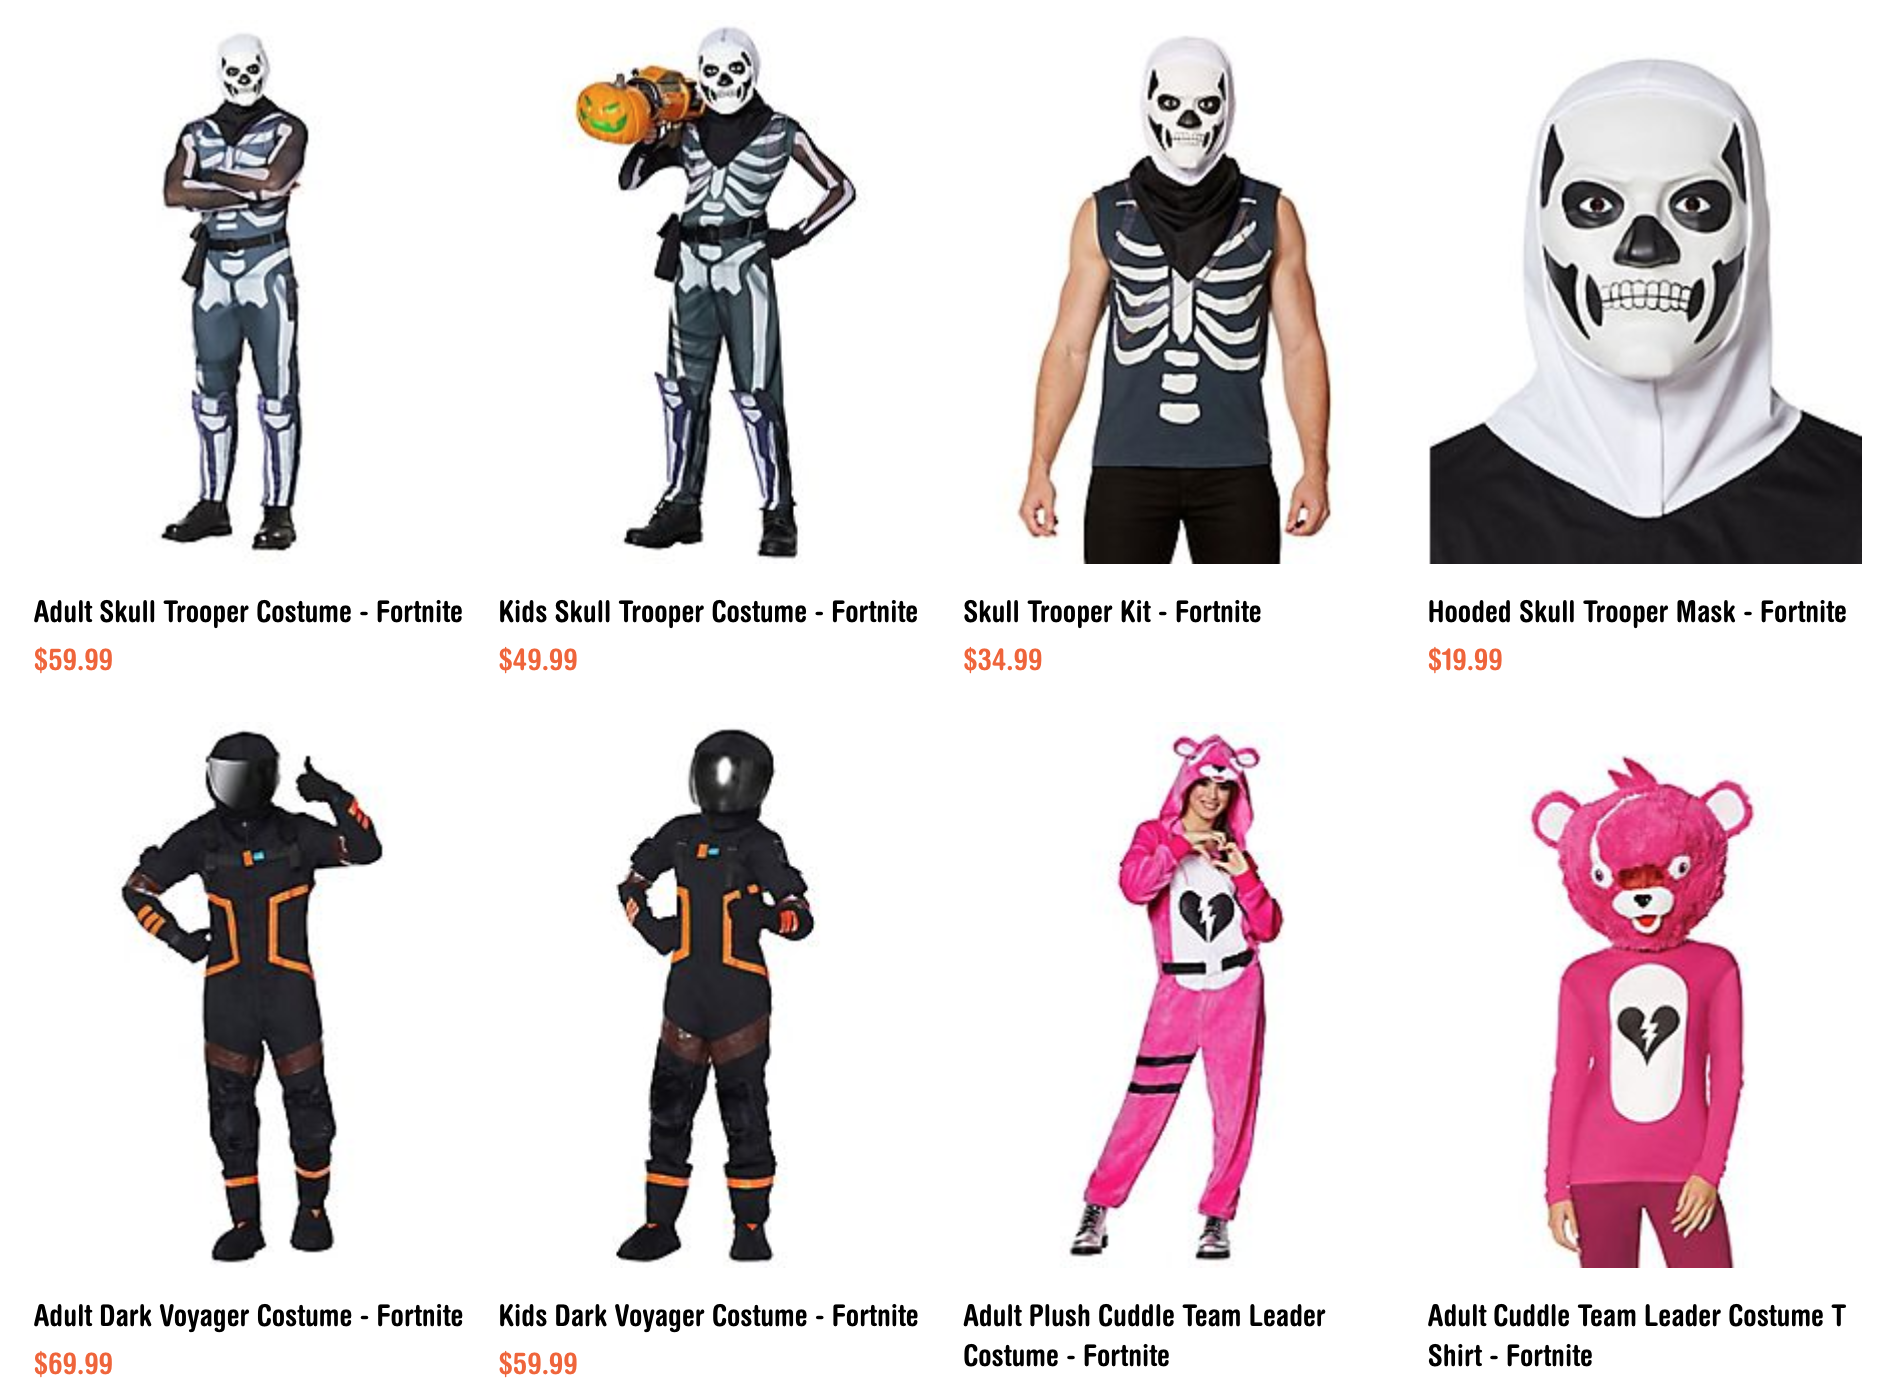 Halloween Fortnite Characters.Dress Up Like Your Favorite Fortnite Characters This